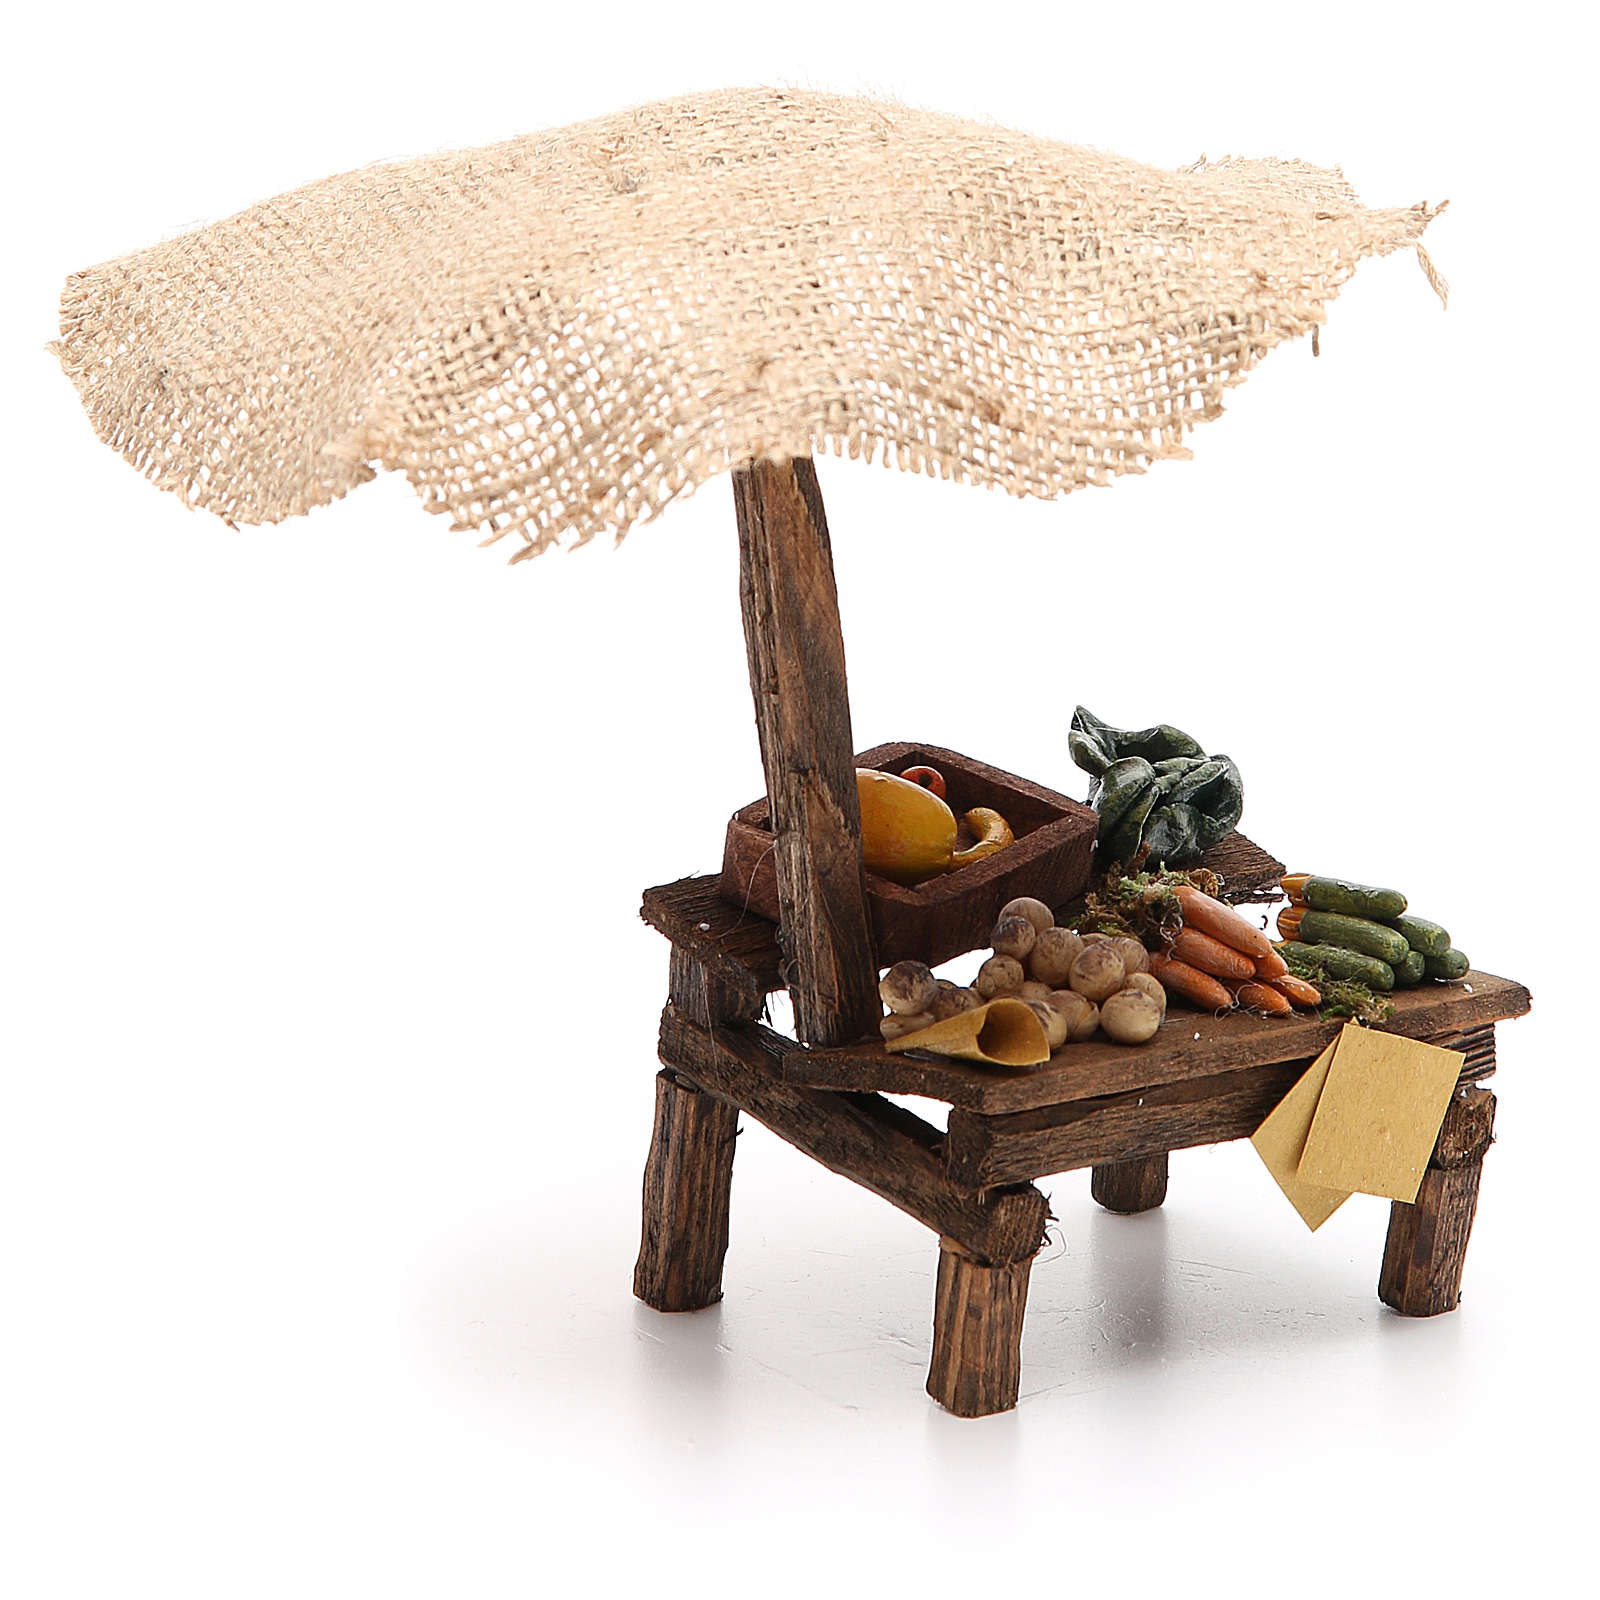 Workshop nativity with beach umbrella, vegetables 16x10x12cm 4